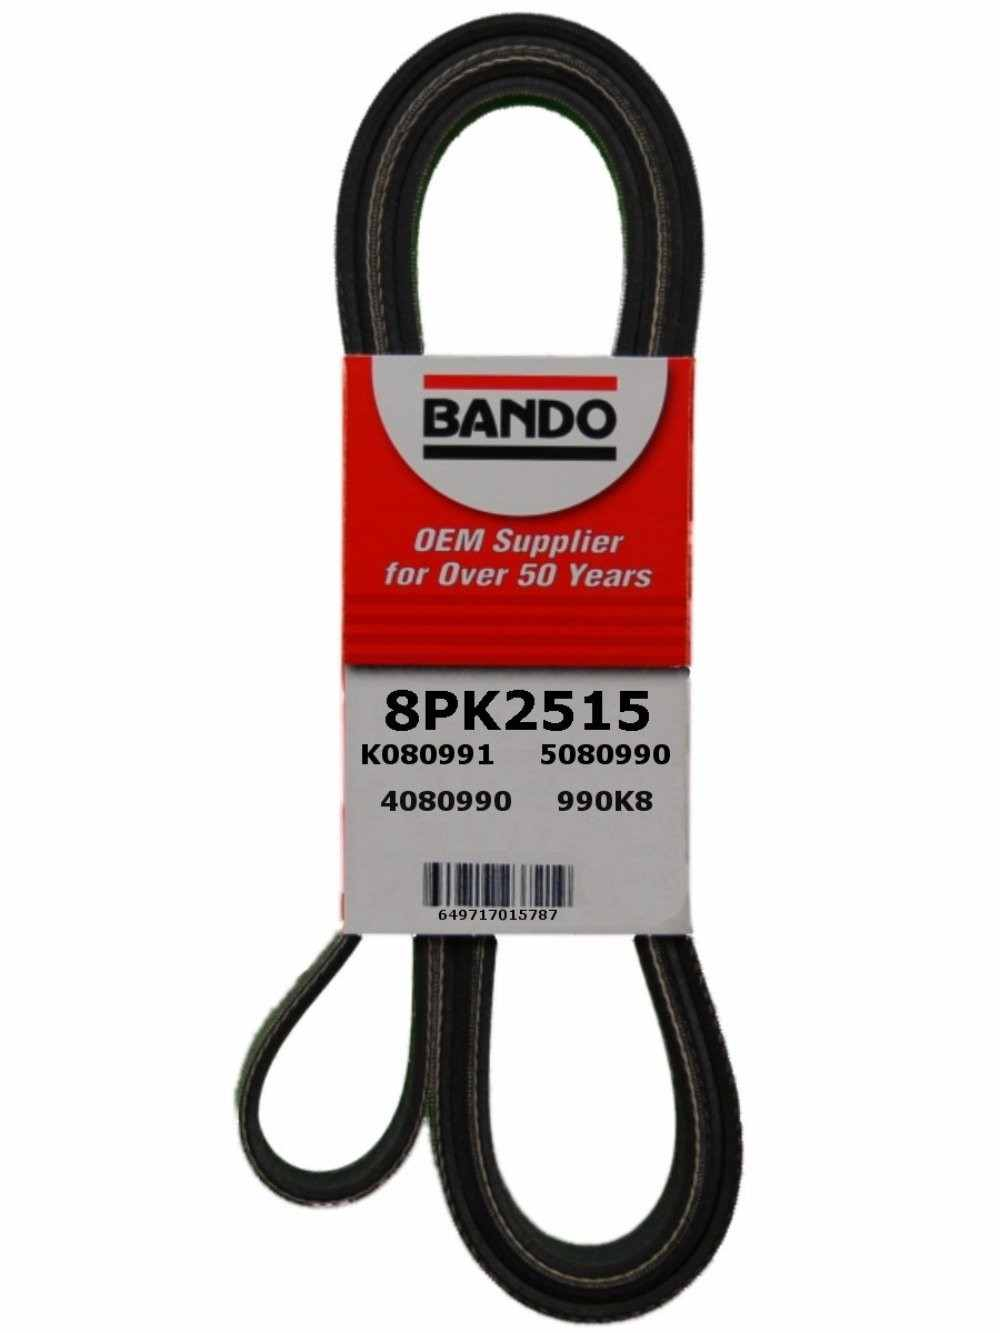 BANDO - Rib Ace Precision Engineered V-Ribbed Belt (Water Pump, Alternator, Air Conditioning and Power Steering) - BWO 8PK2515